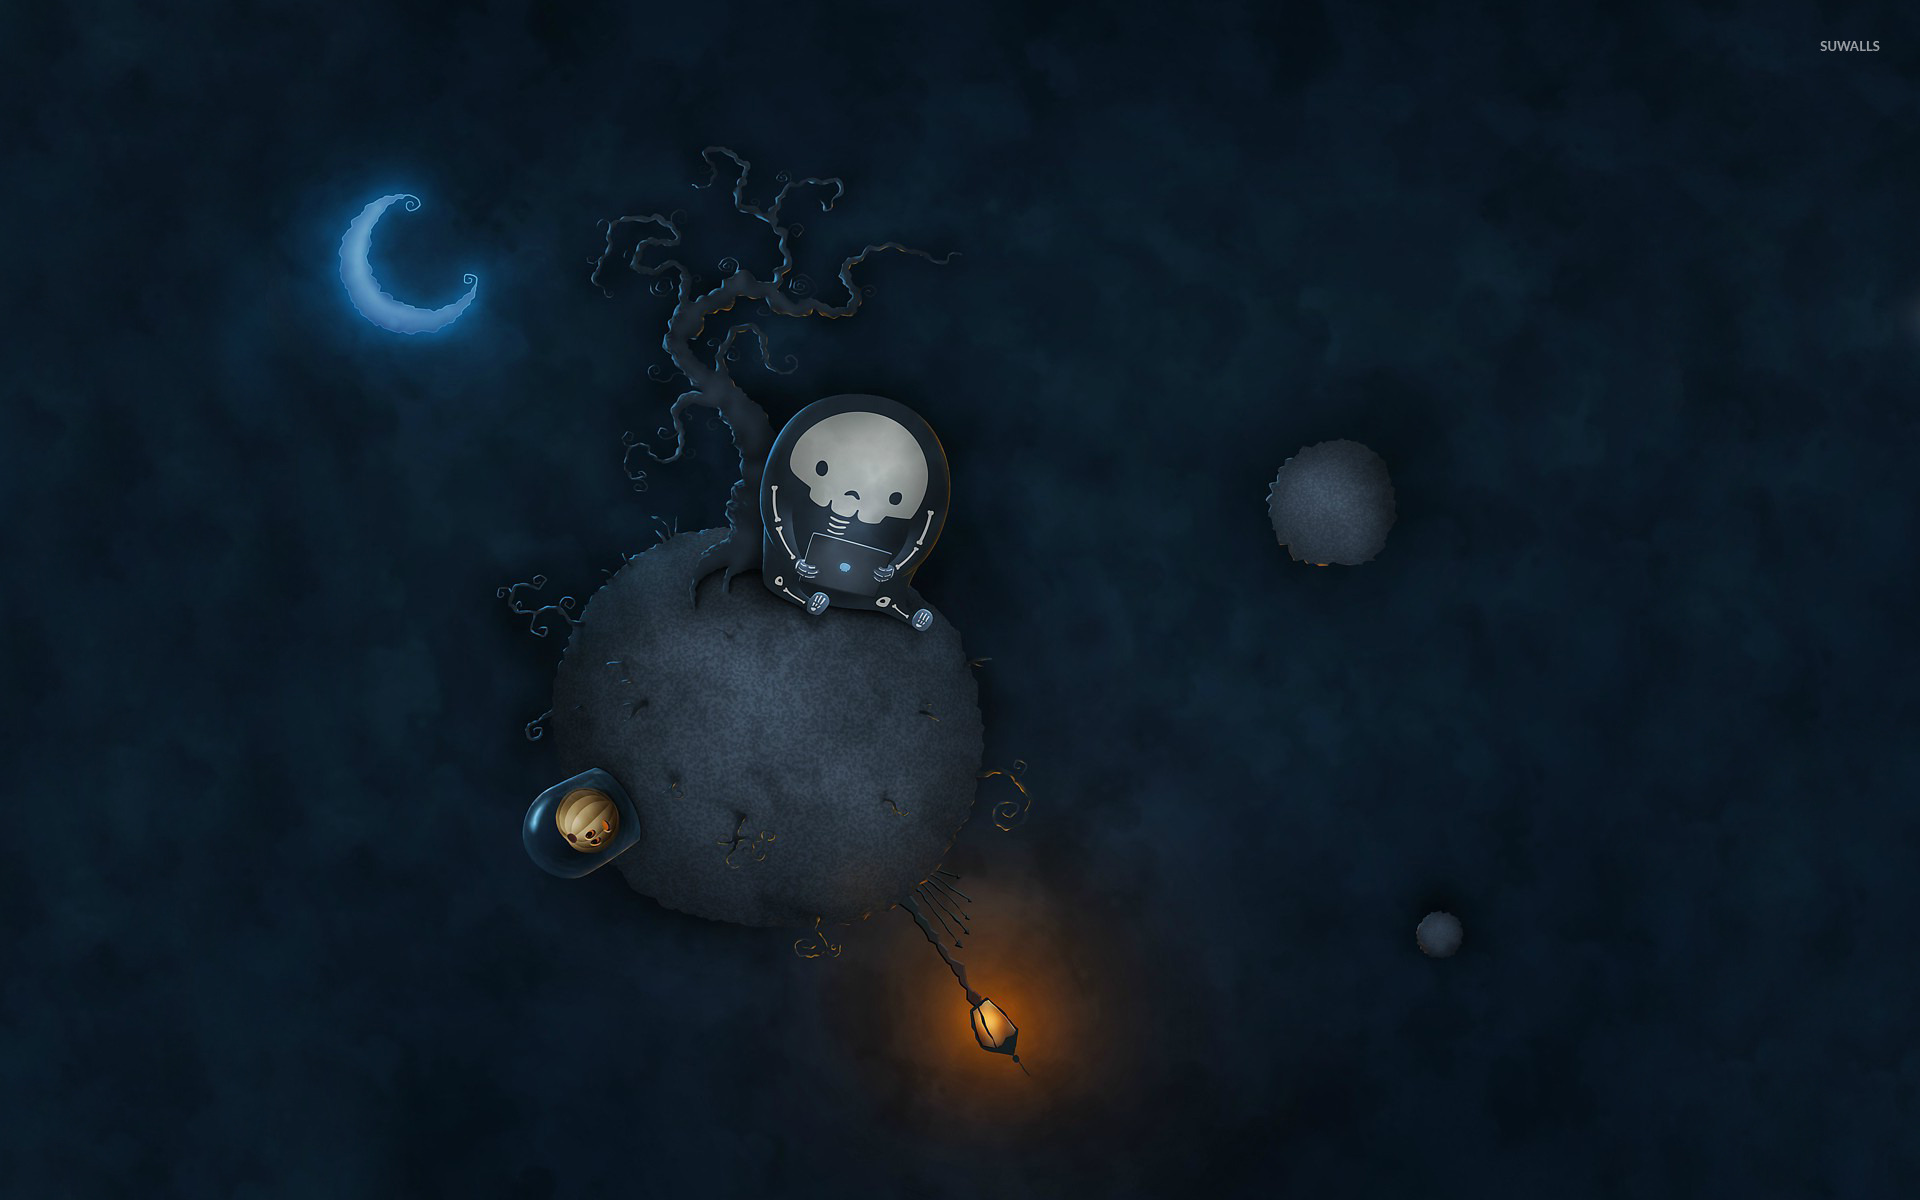 Must see Wallpaper Halloween Skeleton - skeleton-astronaut-on-a-halloween-planet-23422-1920x1200  Collection_759952.jpg